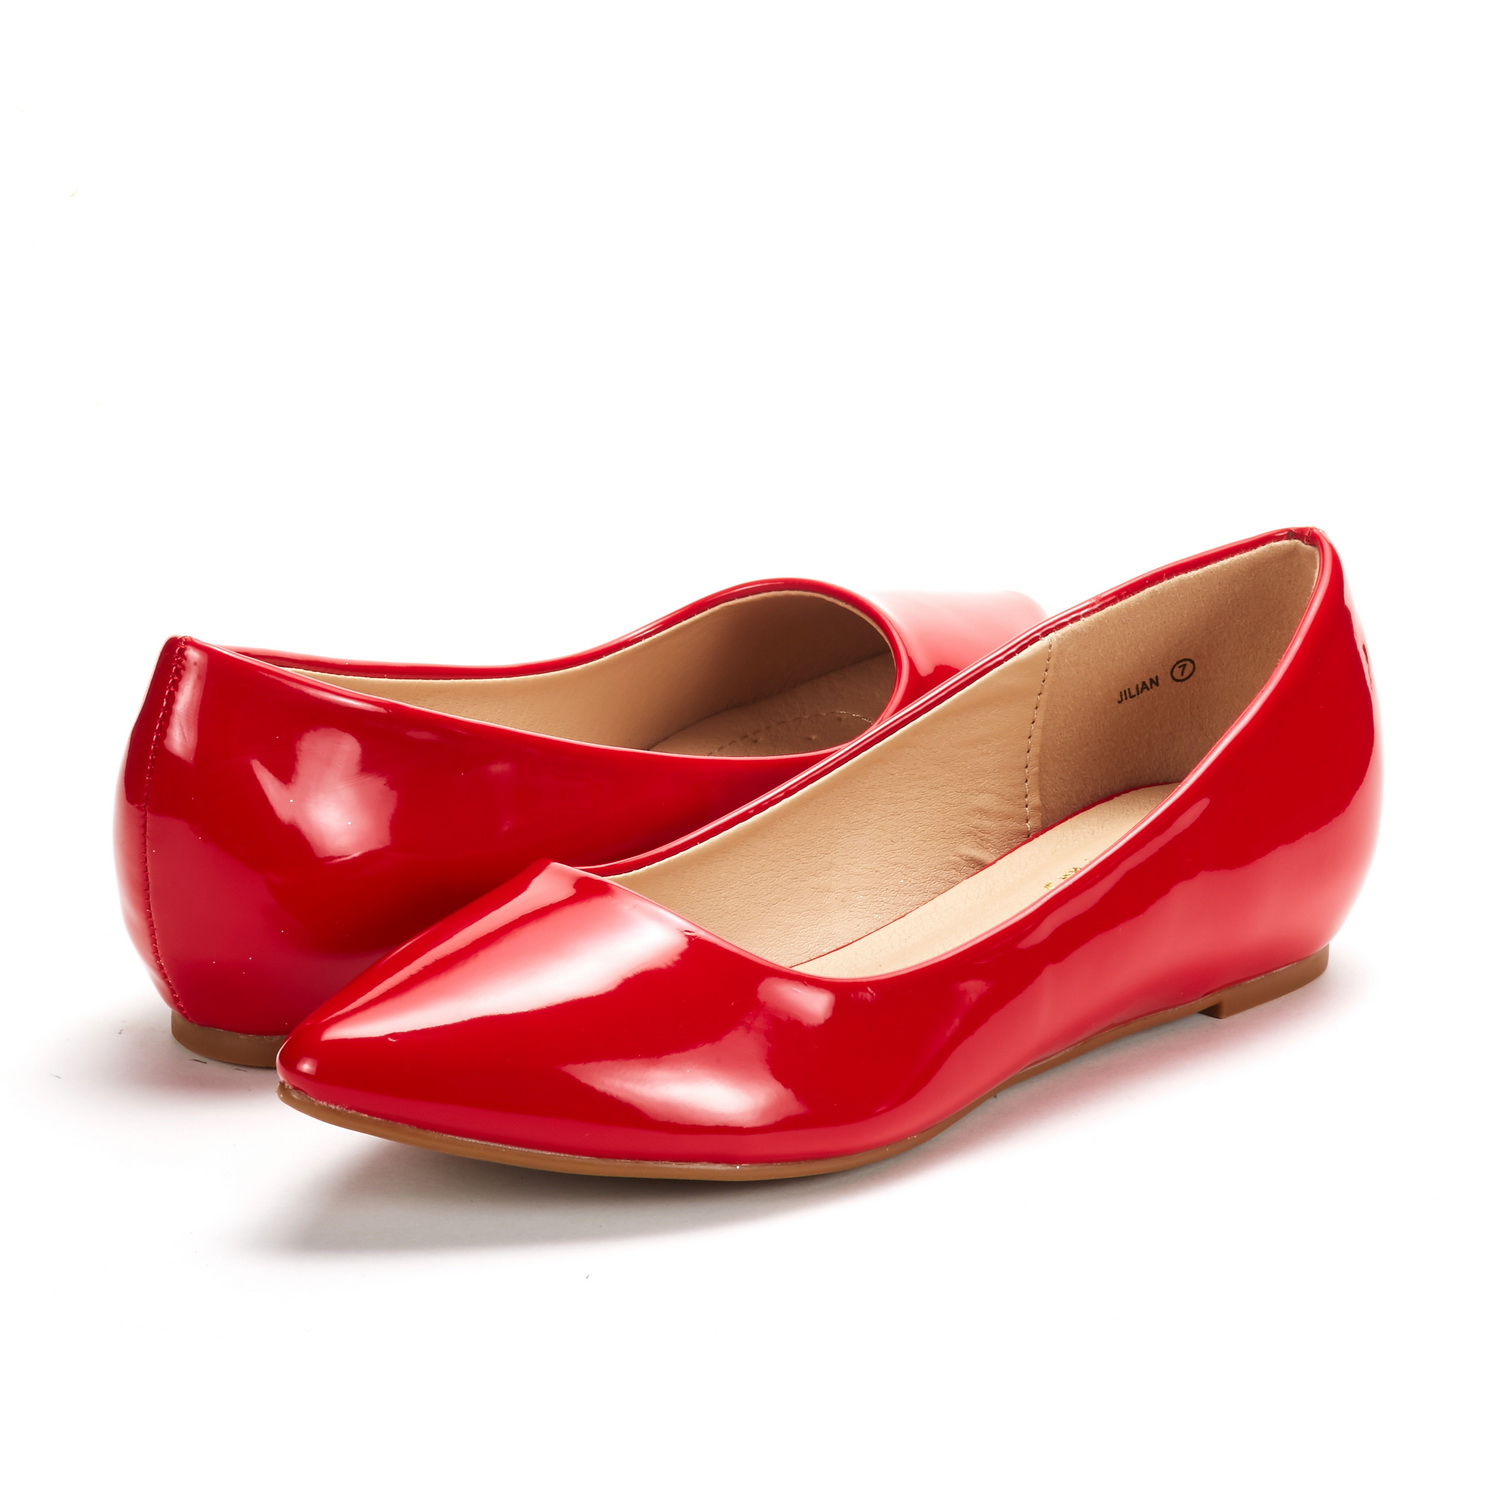 DREAM-PAIRS-Women-Low-Wedge-Flats-Ladies-Pointed-Toe-Slip-On-Comfort-Flat-Shoes thumbnail 39